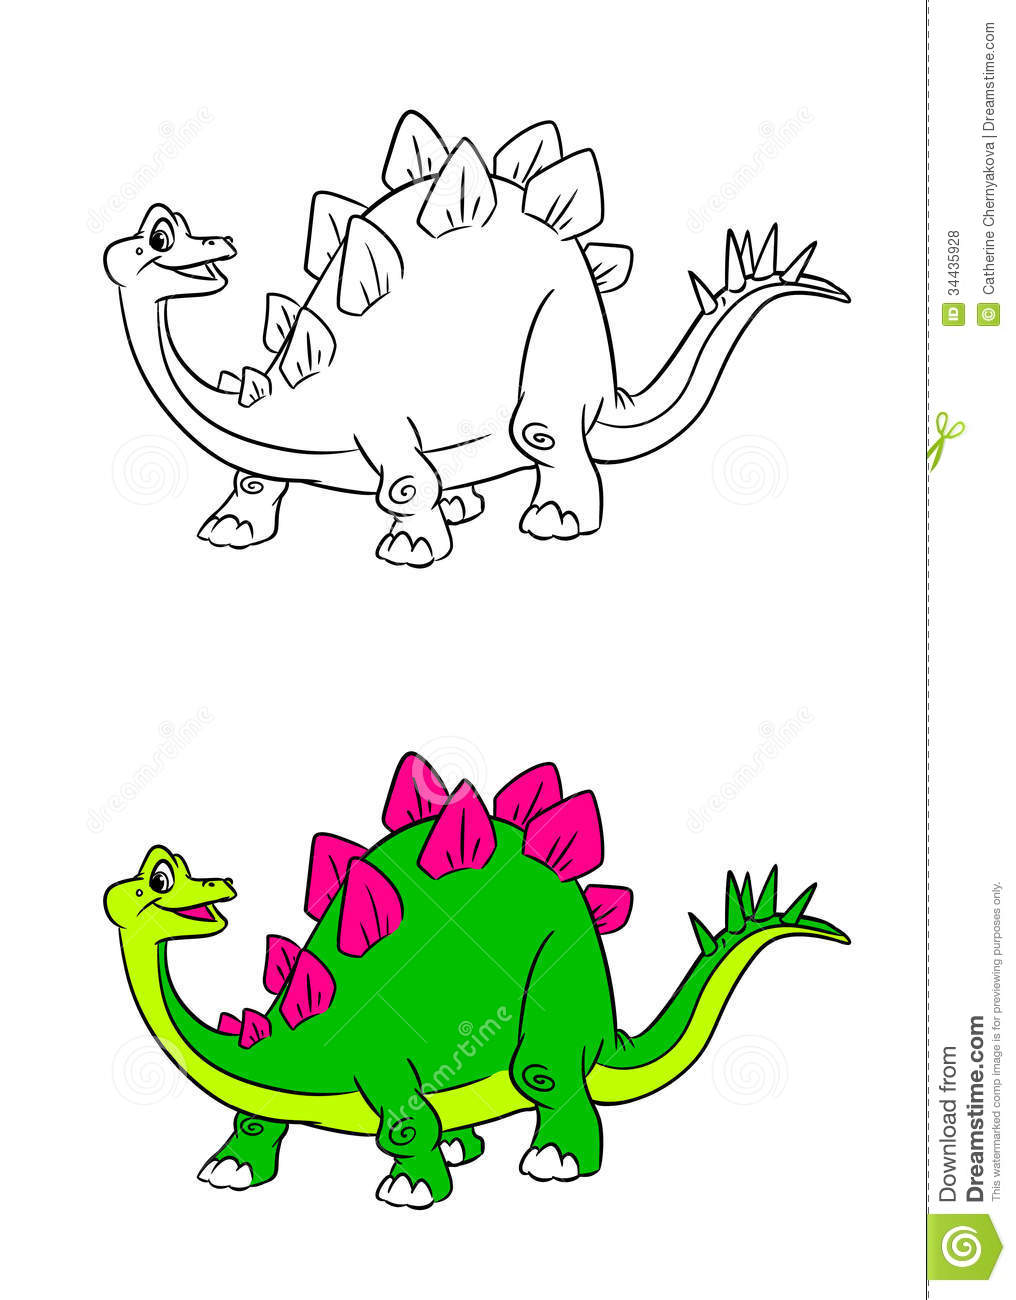 stegosaurus dinosaur cartoon coloring pages royalty free stock